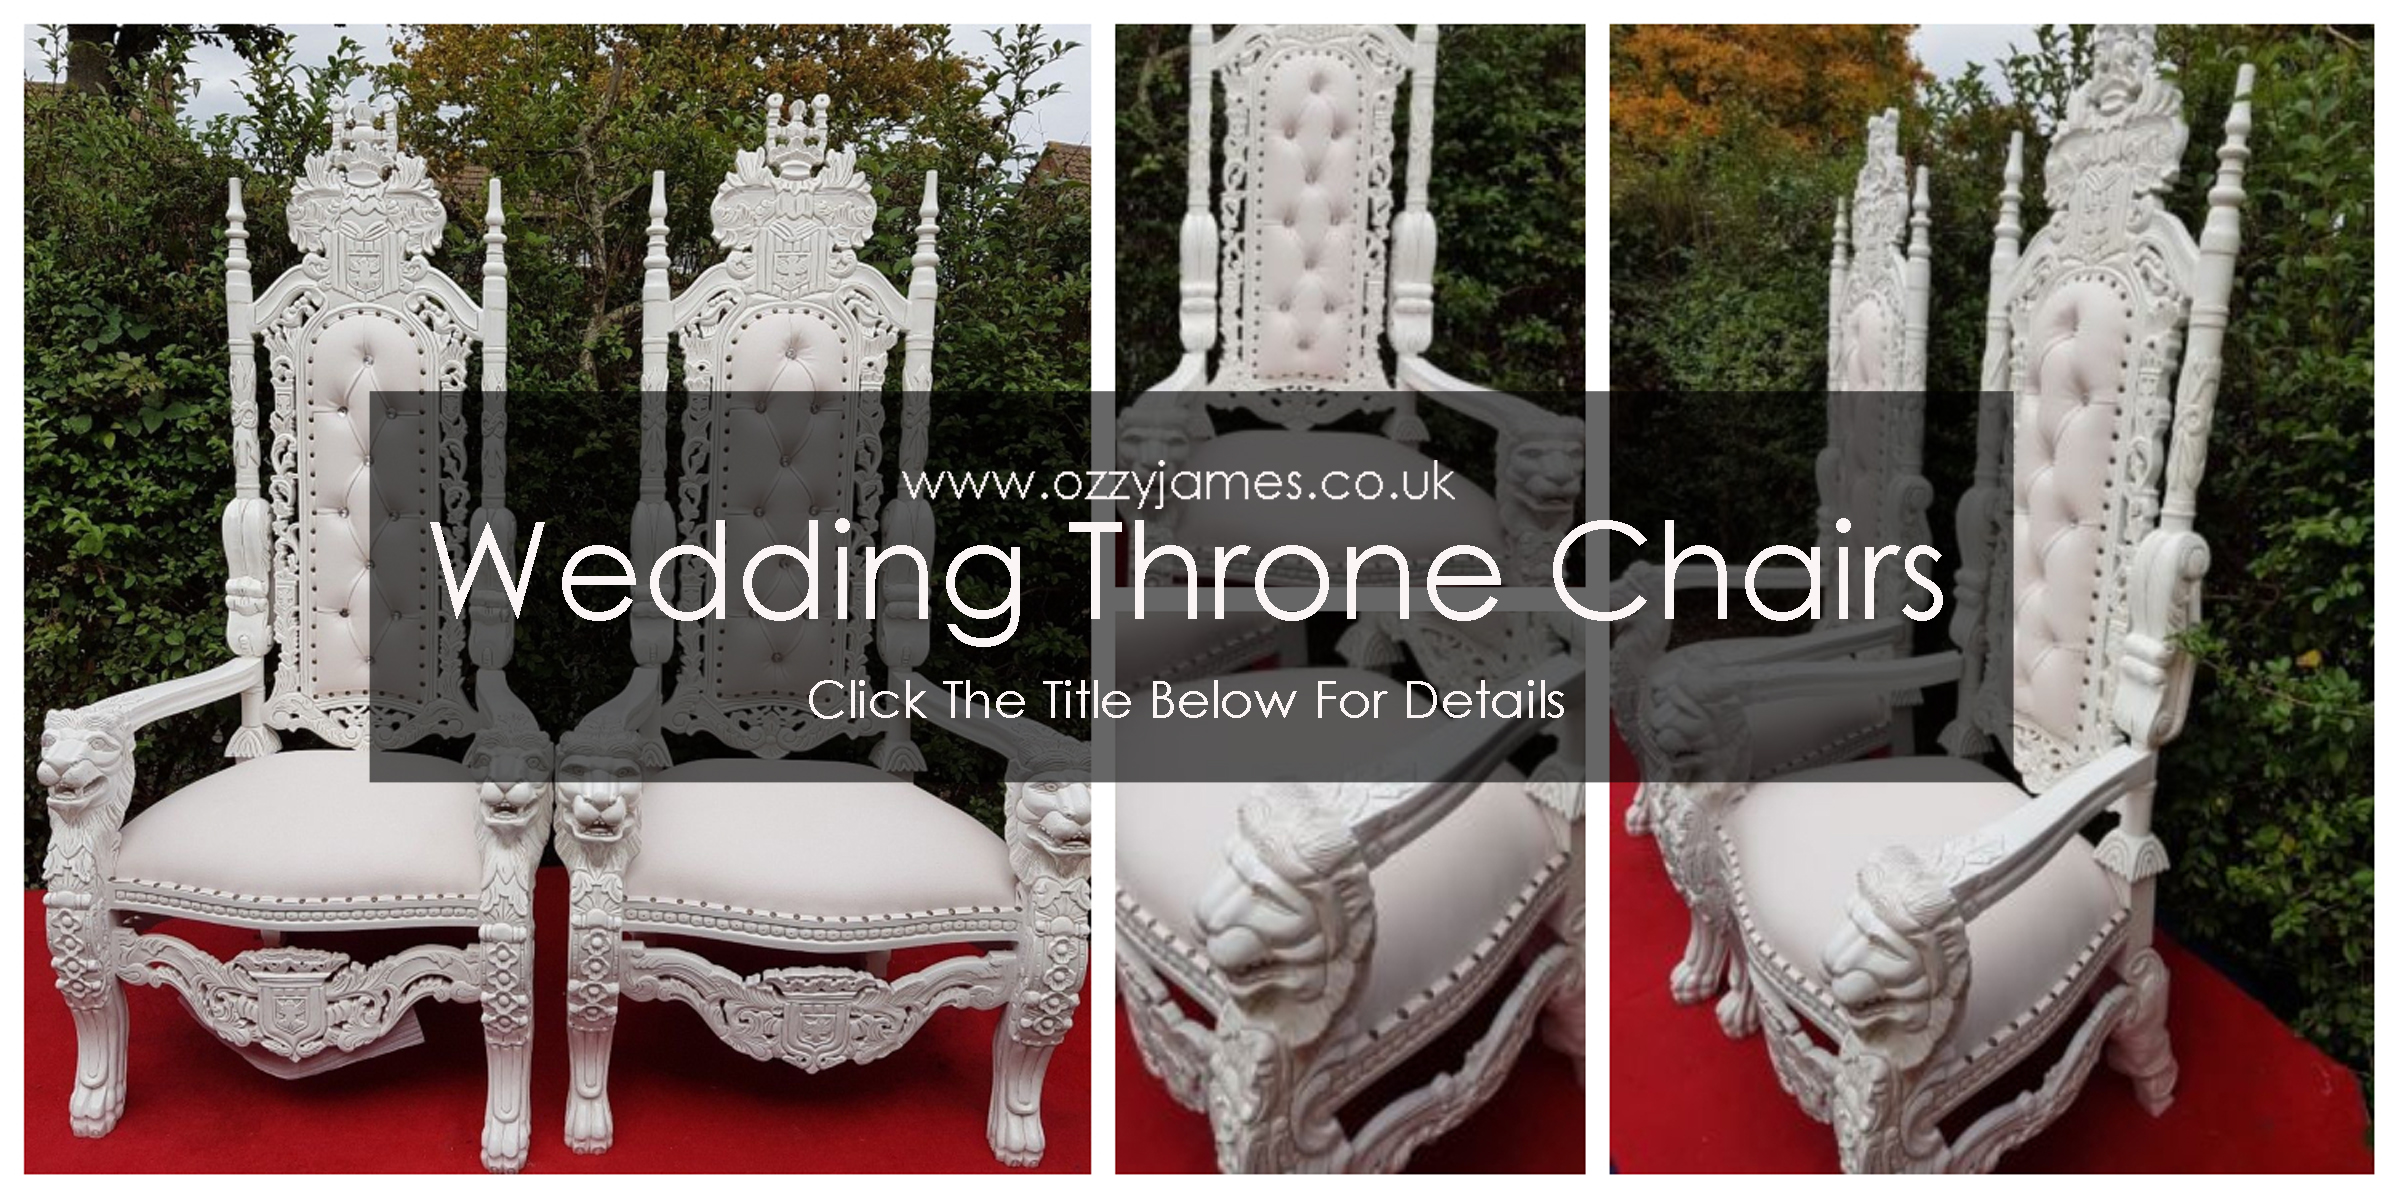 White wedding throne chair hire liverpool cheshire northwest ozzy james events